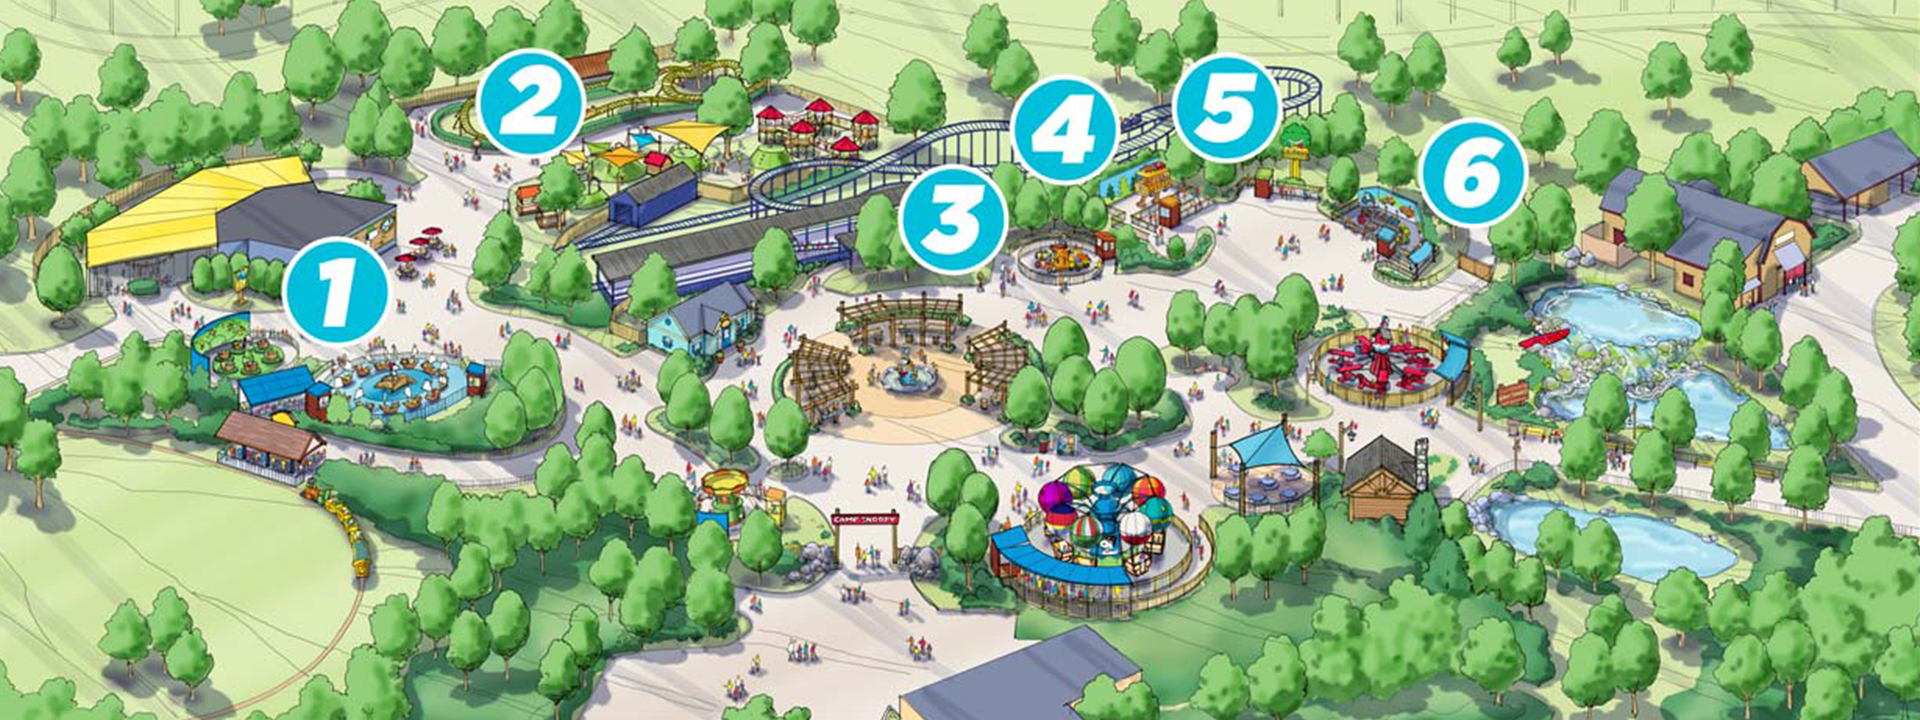 4edcc939da58f3 Camp Snoopy will introduce a total of six new Carowinds attractions  designed especially for young campers and their families.